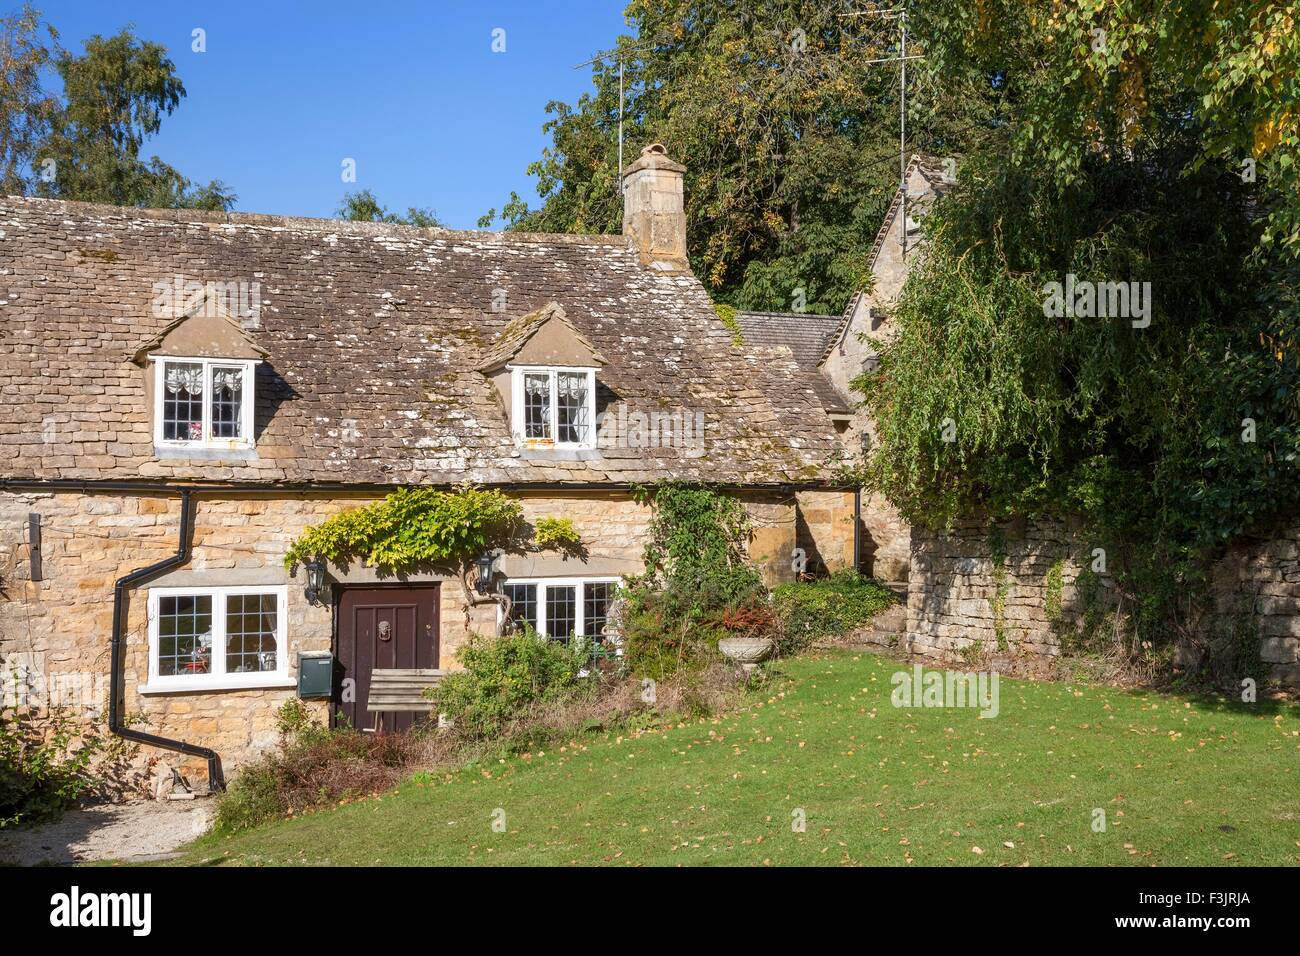 Pretty stone Cotswold cottage, Snowshill village, Worcestershire, England. - Stock Image